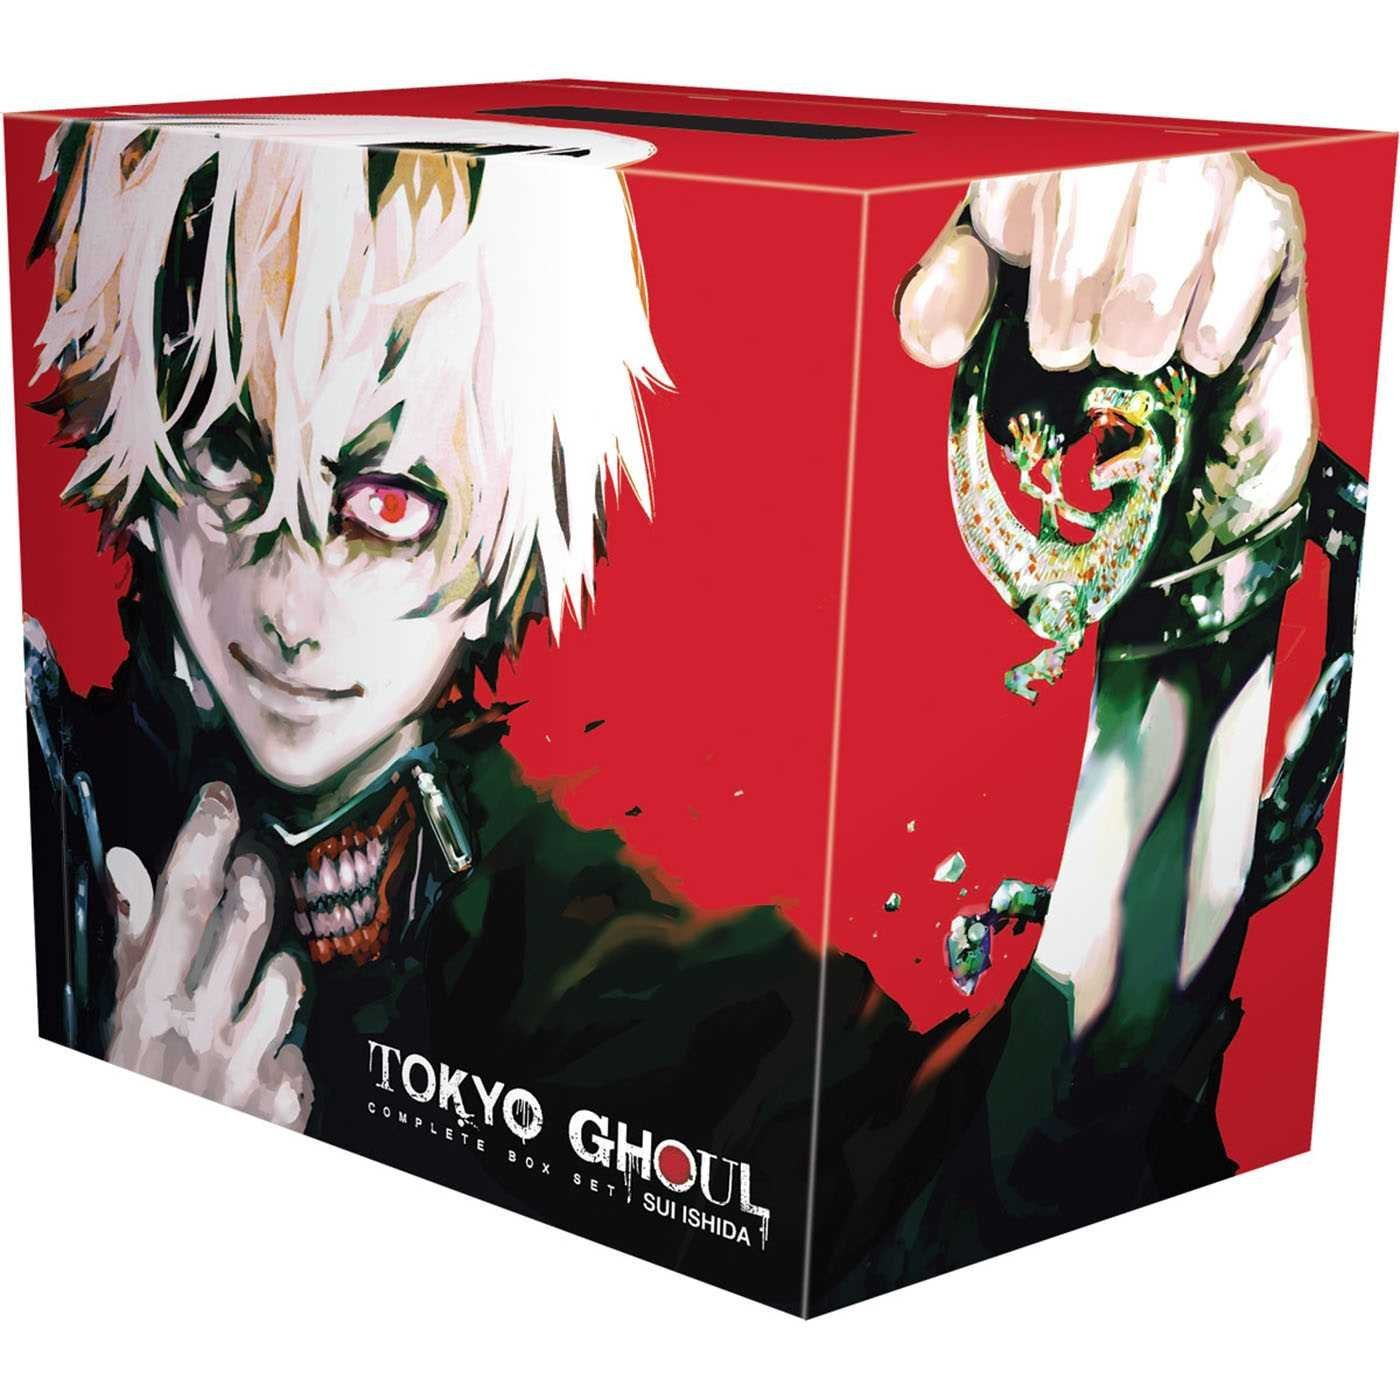 Tokyo Ghoul Complete Box Set: Includes vols. 1-14 with premium by VIZ Media LLC